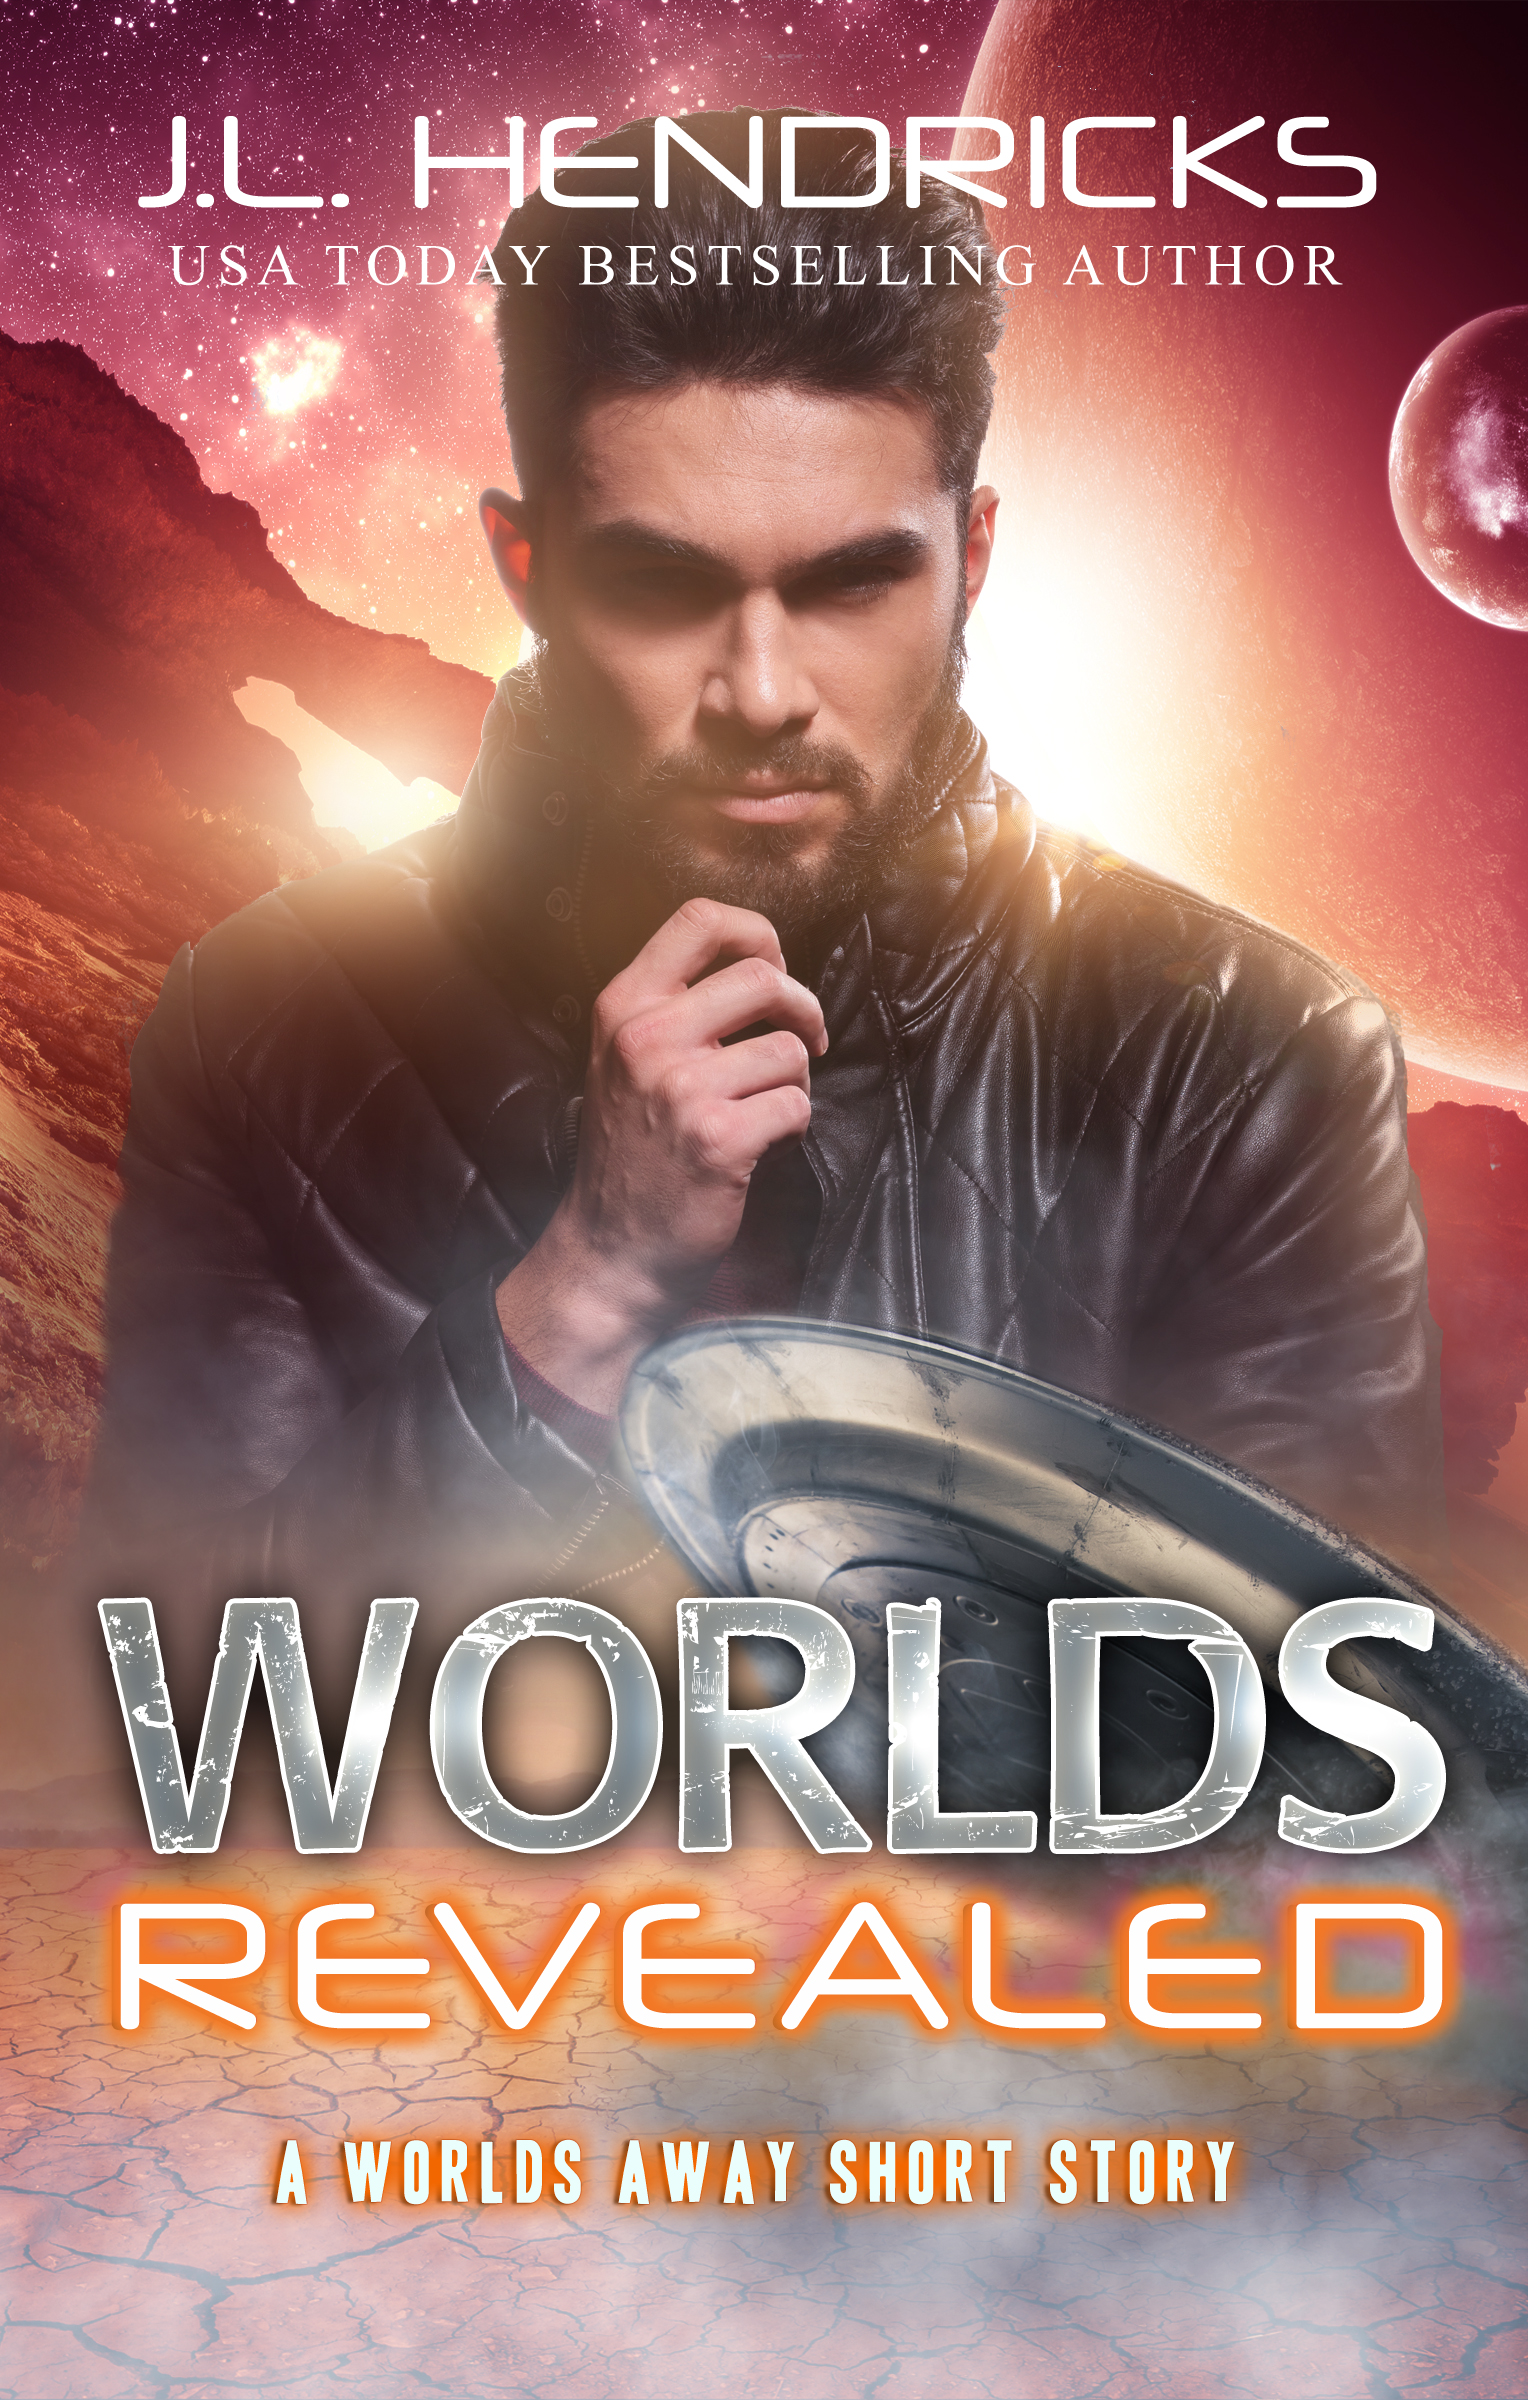 The Worlds Away Series Companion Novella: Worlds Revealed